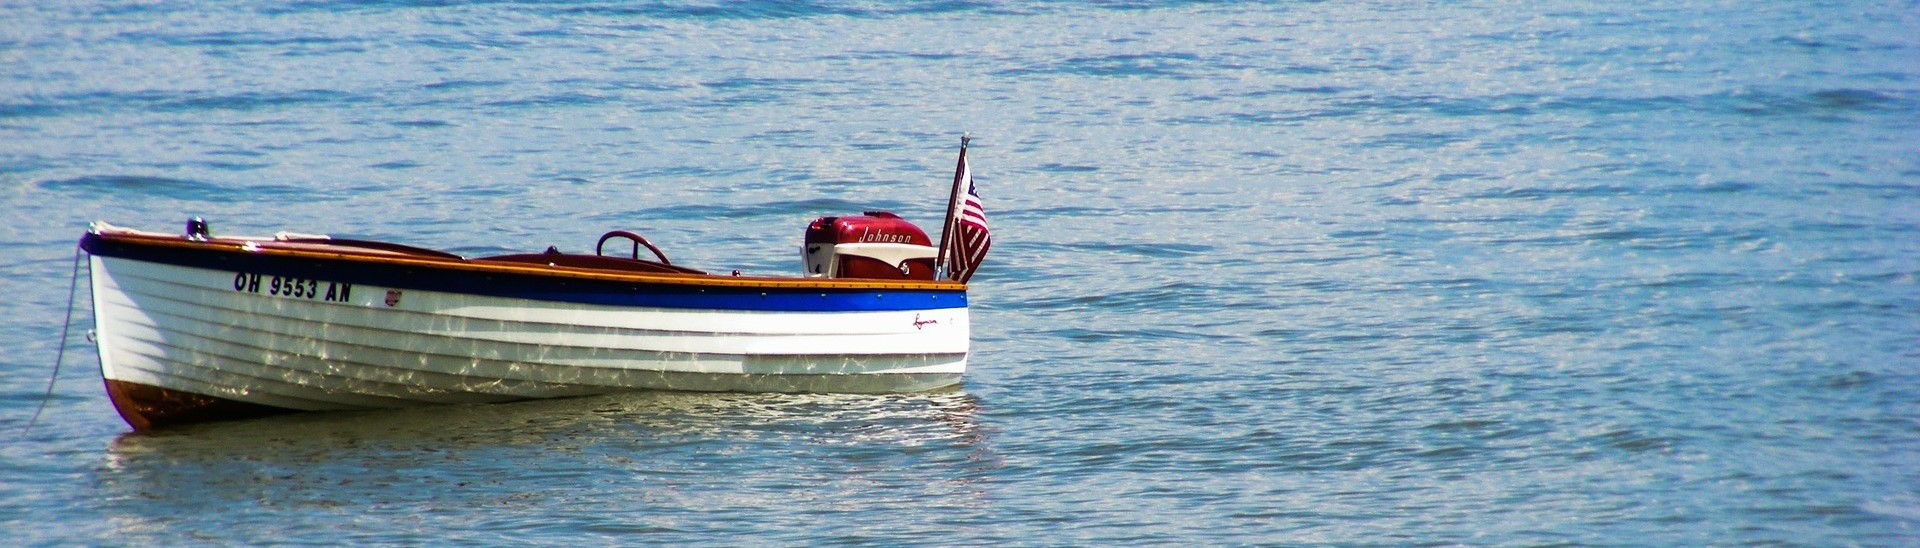 Boat Sitting on Ohio waters | Breast Cancer Car Donations